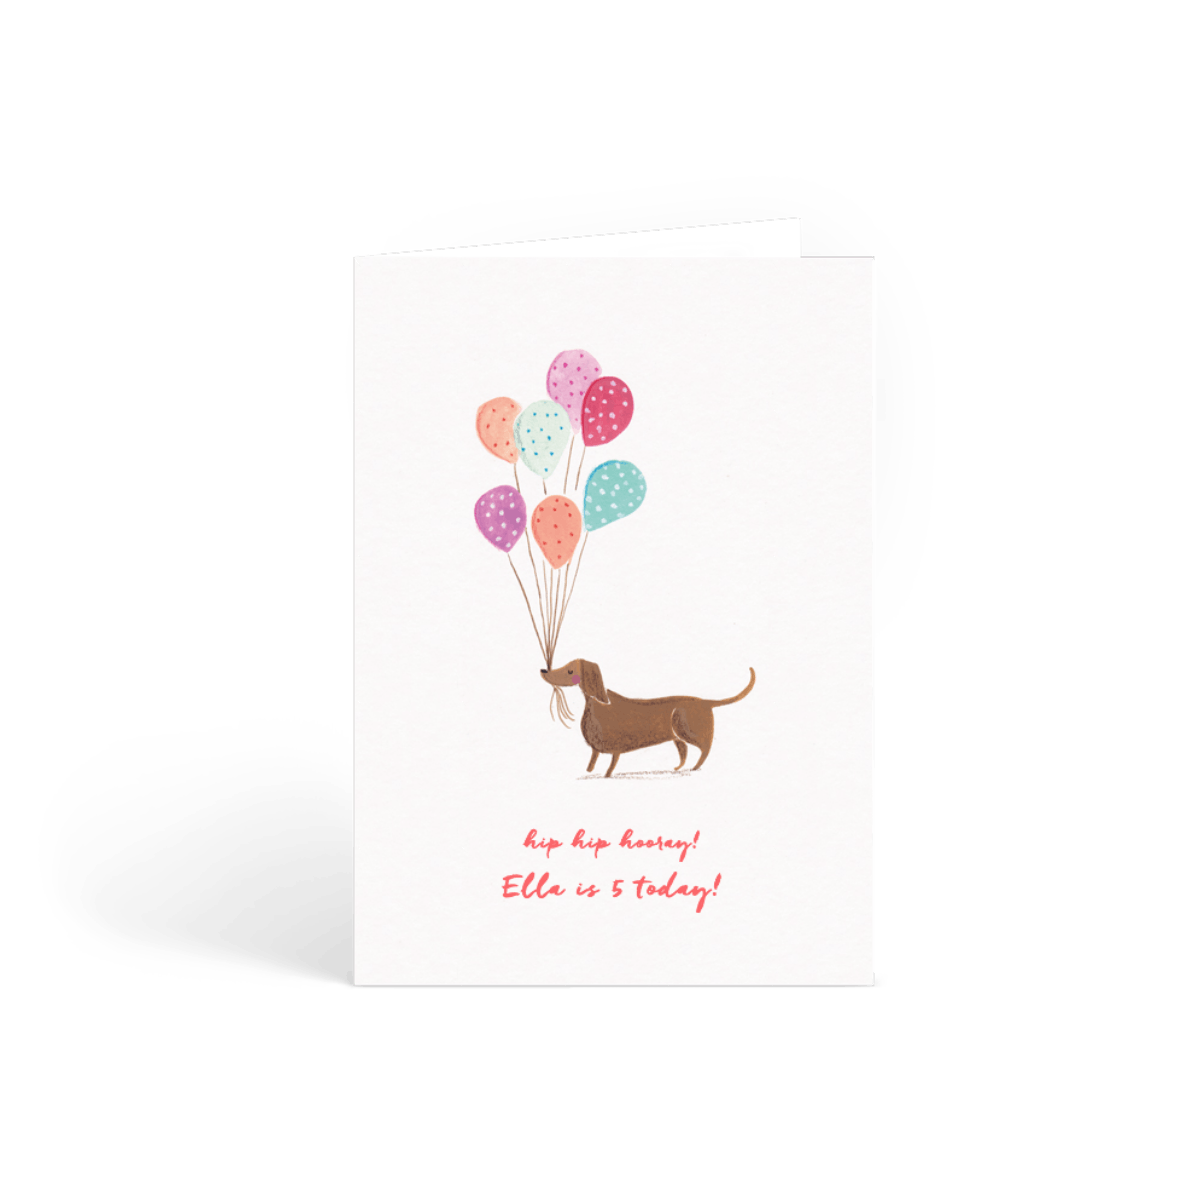 Https%3a%2f%2fwww.papier.com%2fproduct image%2f3201%2f2%2fdachshund with balloons 868 avant 1453910702.png?ixlib=rb 1.1